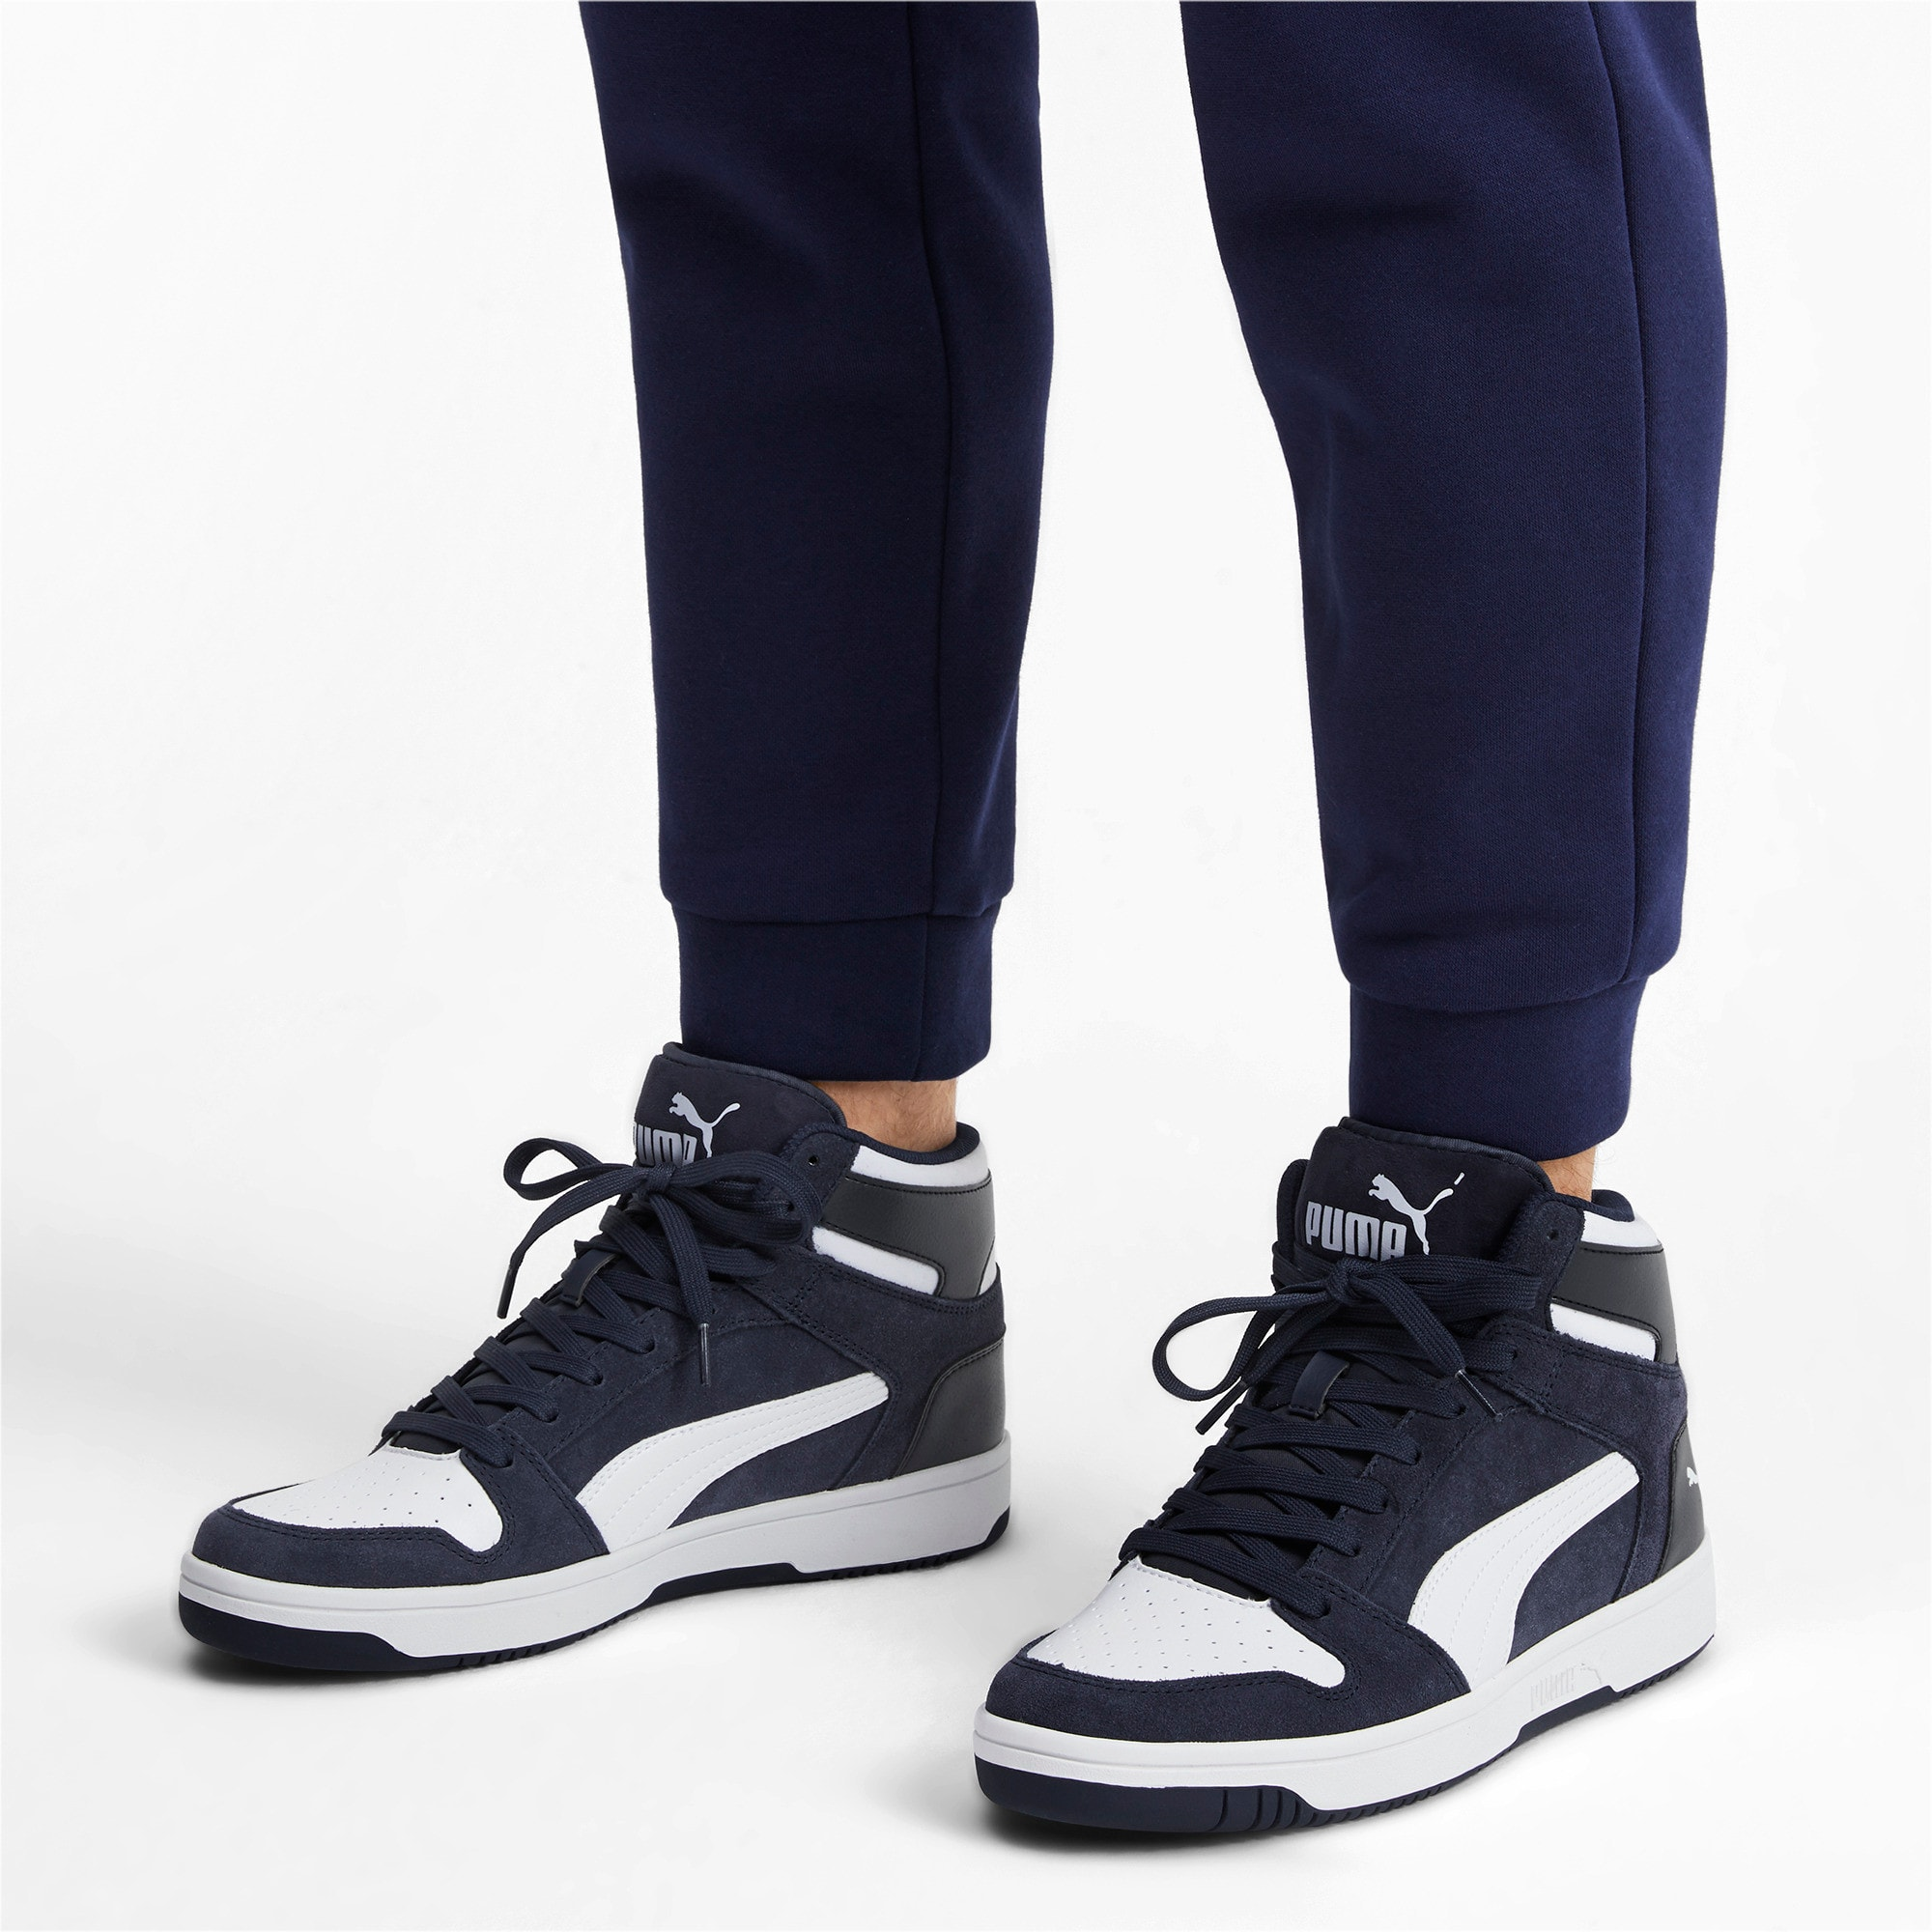 Thumbnail 3 of Rebound Layup Suede Trainers, Peacoat-Puma White, medium-IND